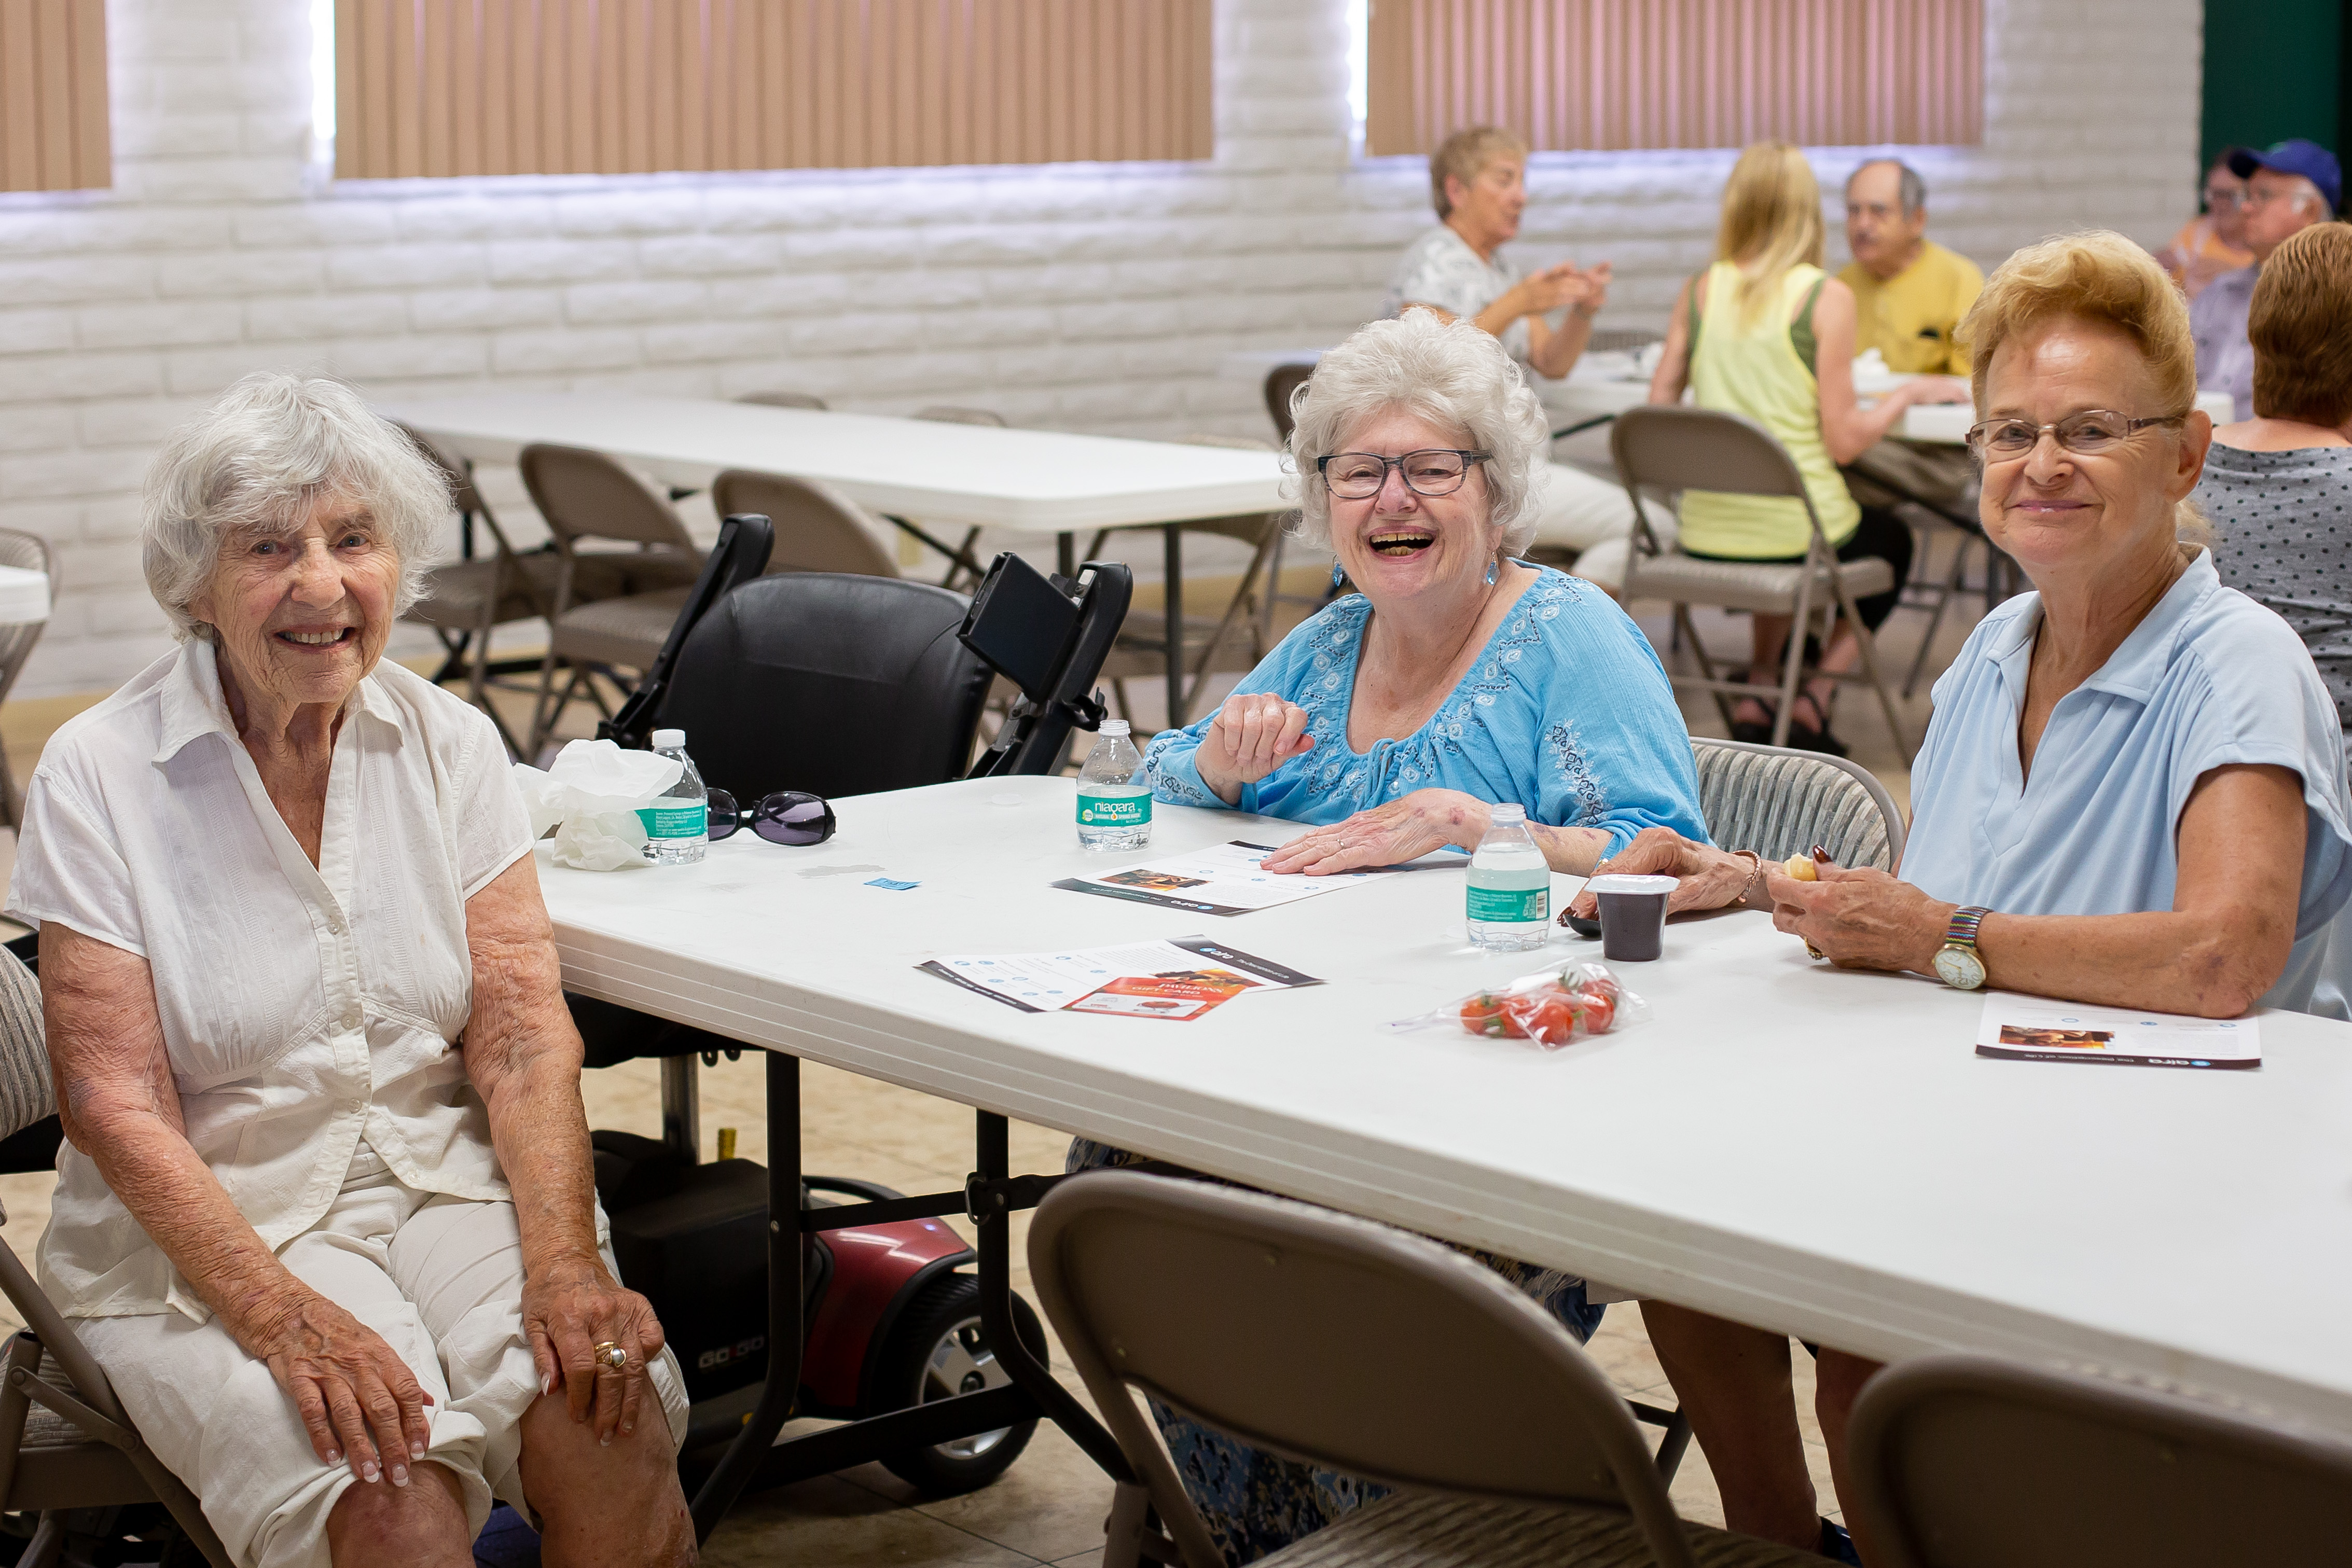 Groups team up to provide lunches for North County seniors